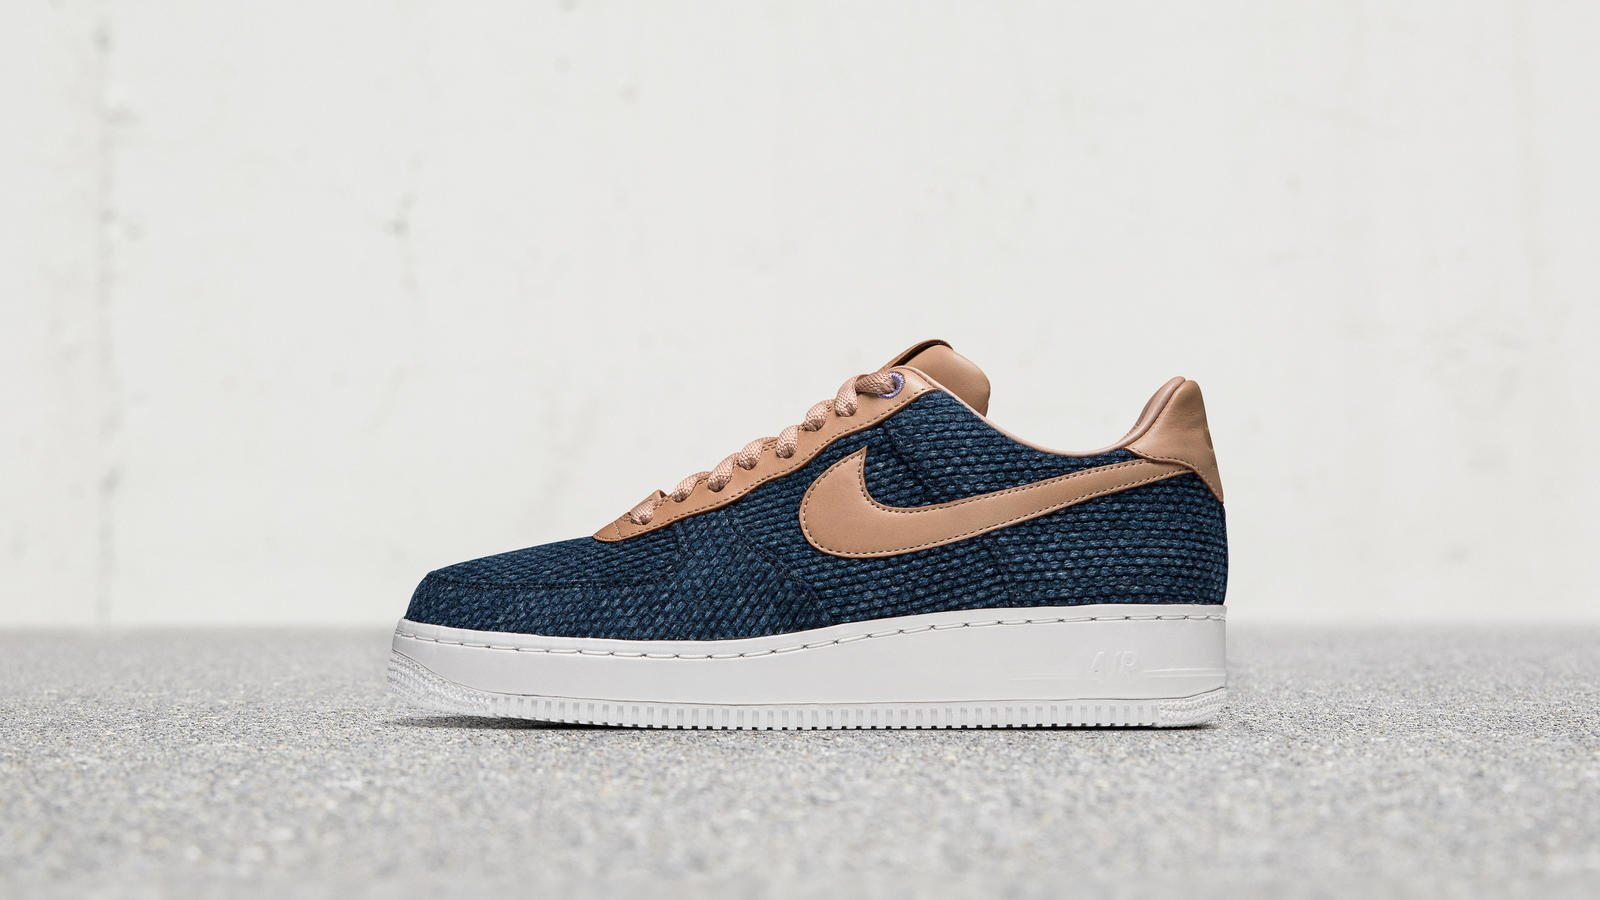 nike-air-force-1-low-aizome-id-release-20170729